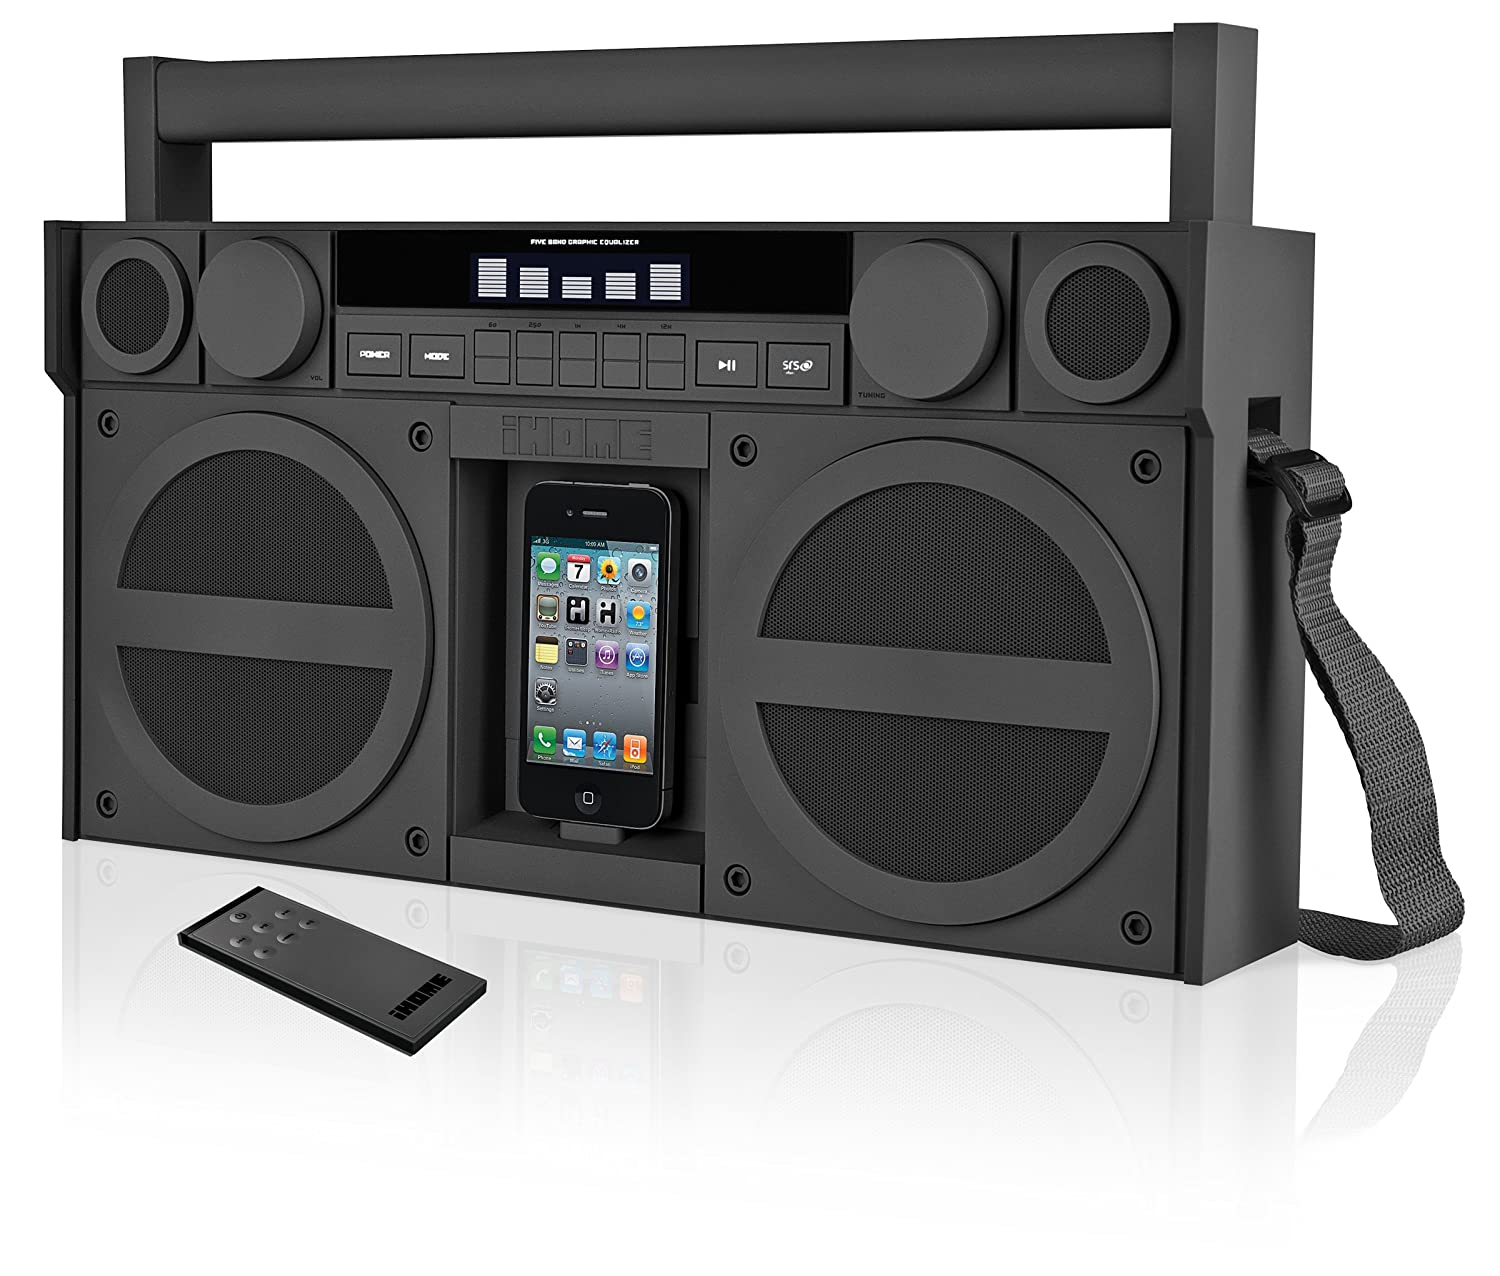 iHome IP4GZC FM 30-Pin iPod/iPhone Speaker Dock Boombox (Gunmetal)